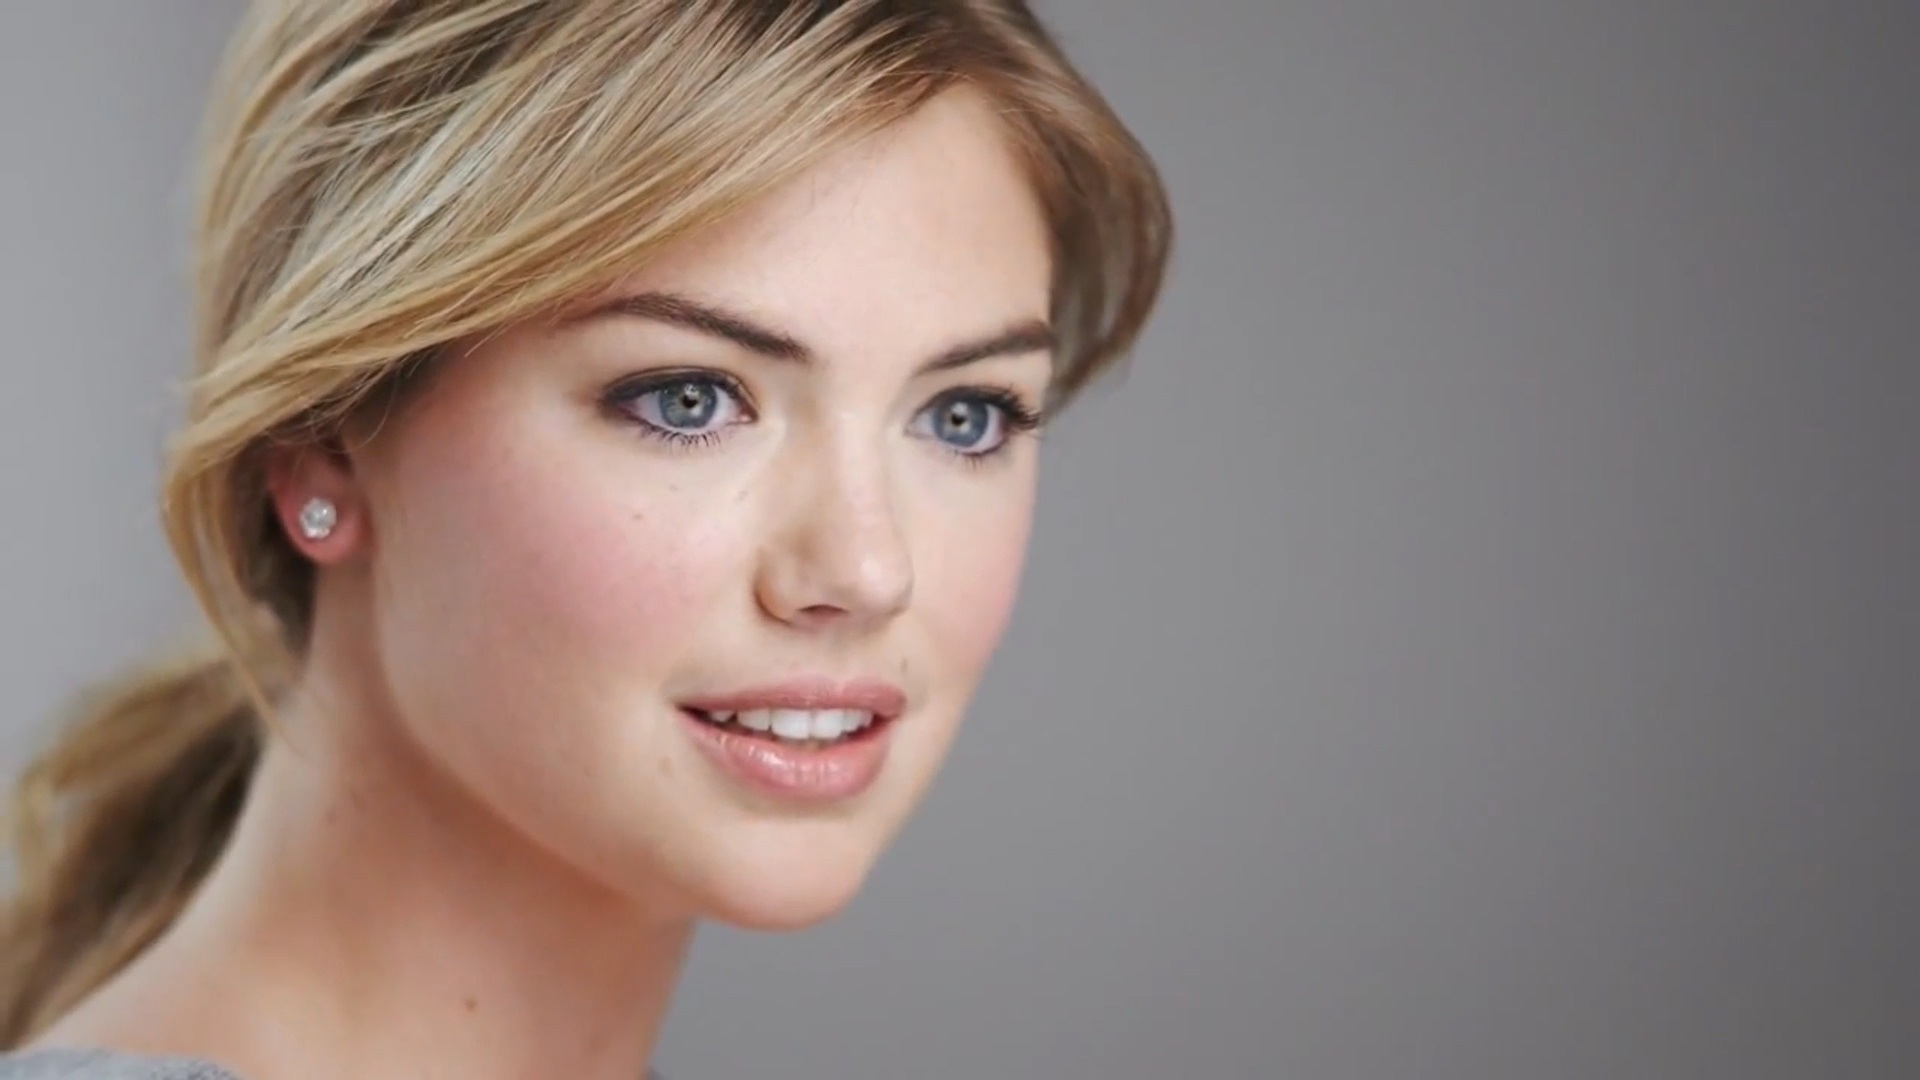 Kate Upton Wallpaper HD Widescreen - WallpaperSafari